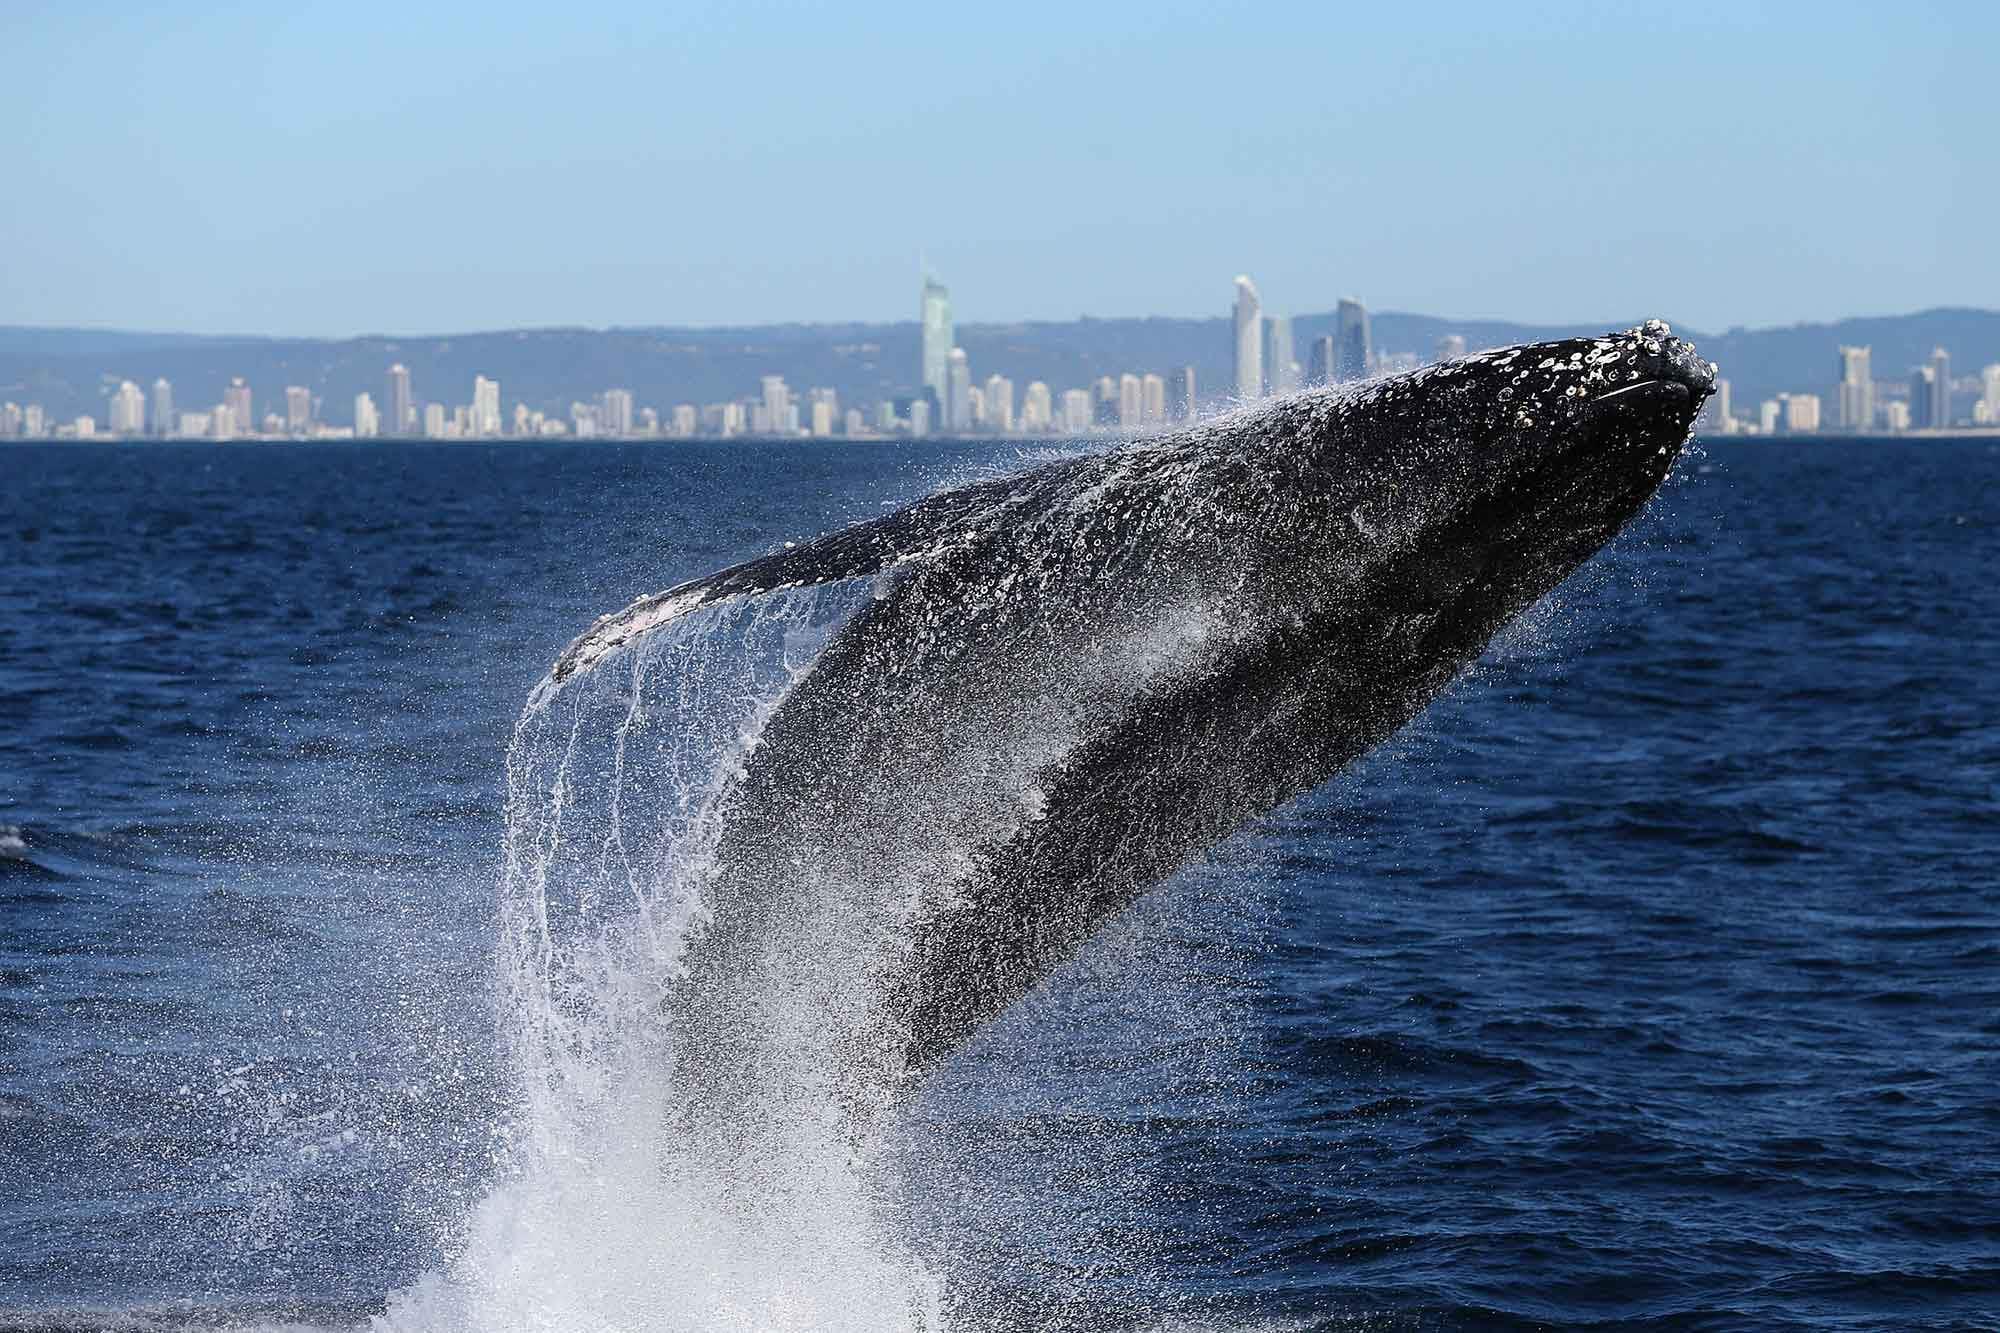 Australia's first Aboriginal owned whale-watching tour opens in Queensland